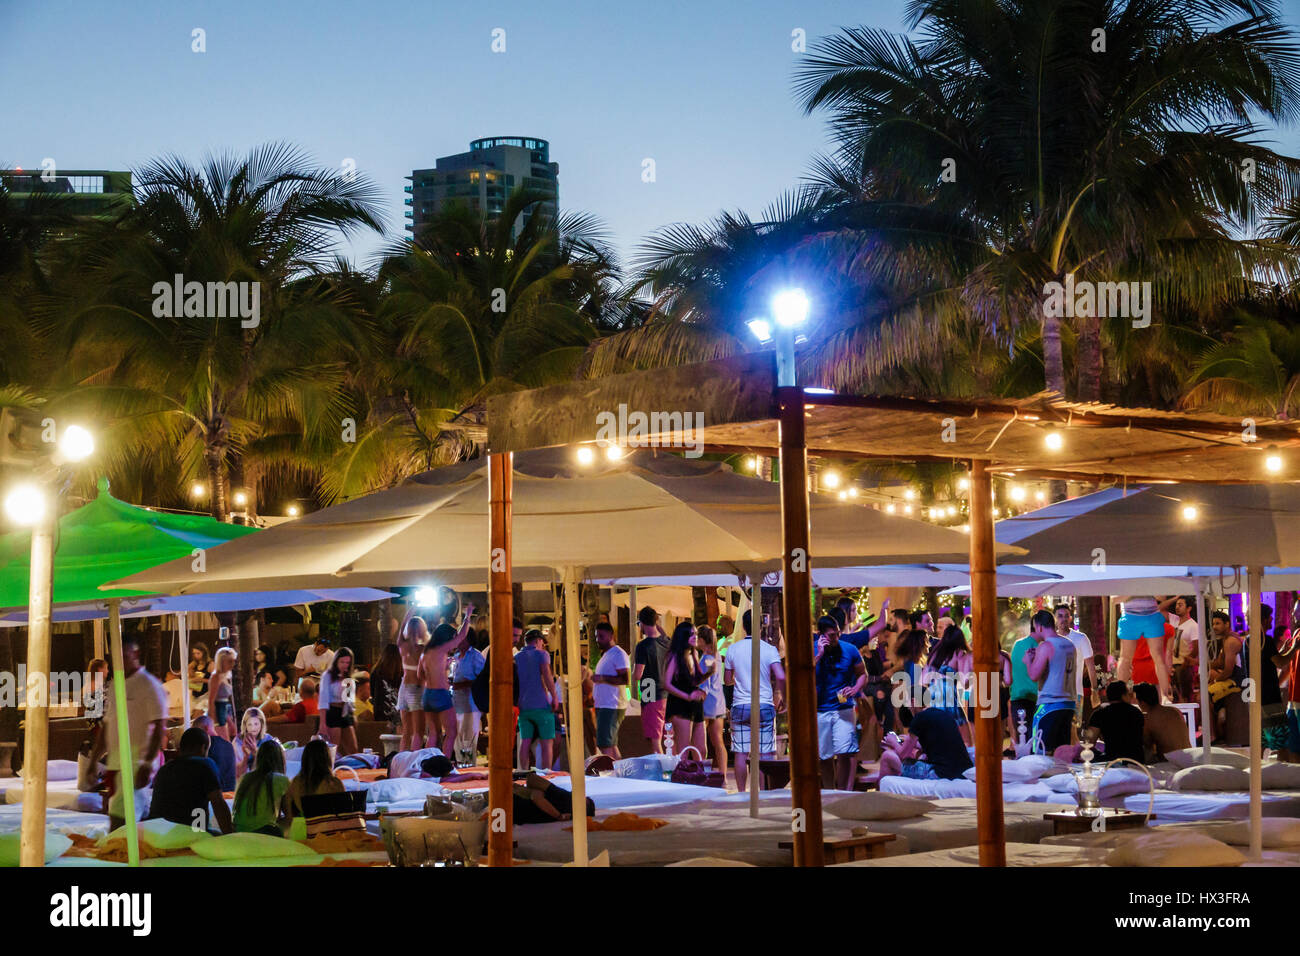 Miami beach florida ocean drive nikki beach club restaurant lifestyle cabana bar outdoor crowd leisure nightlife